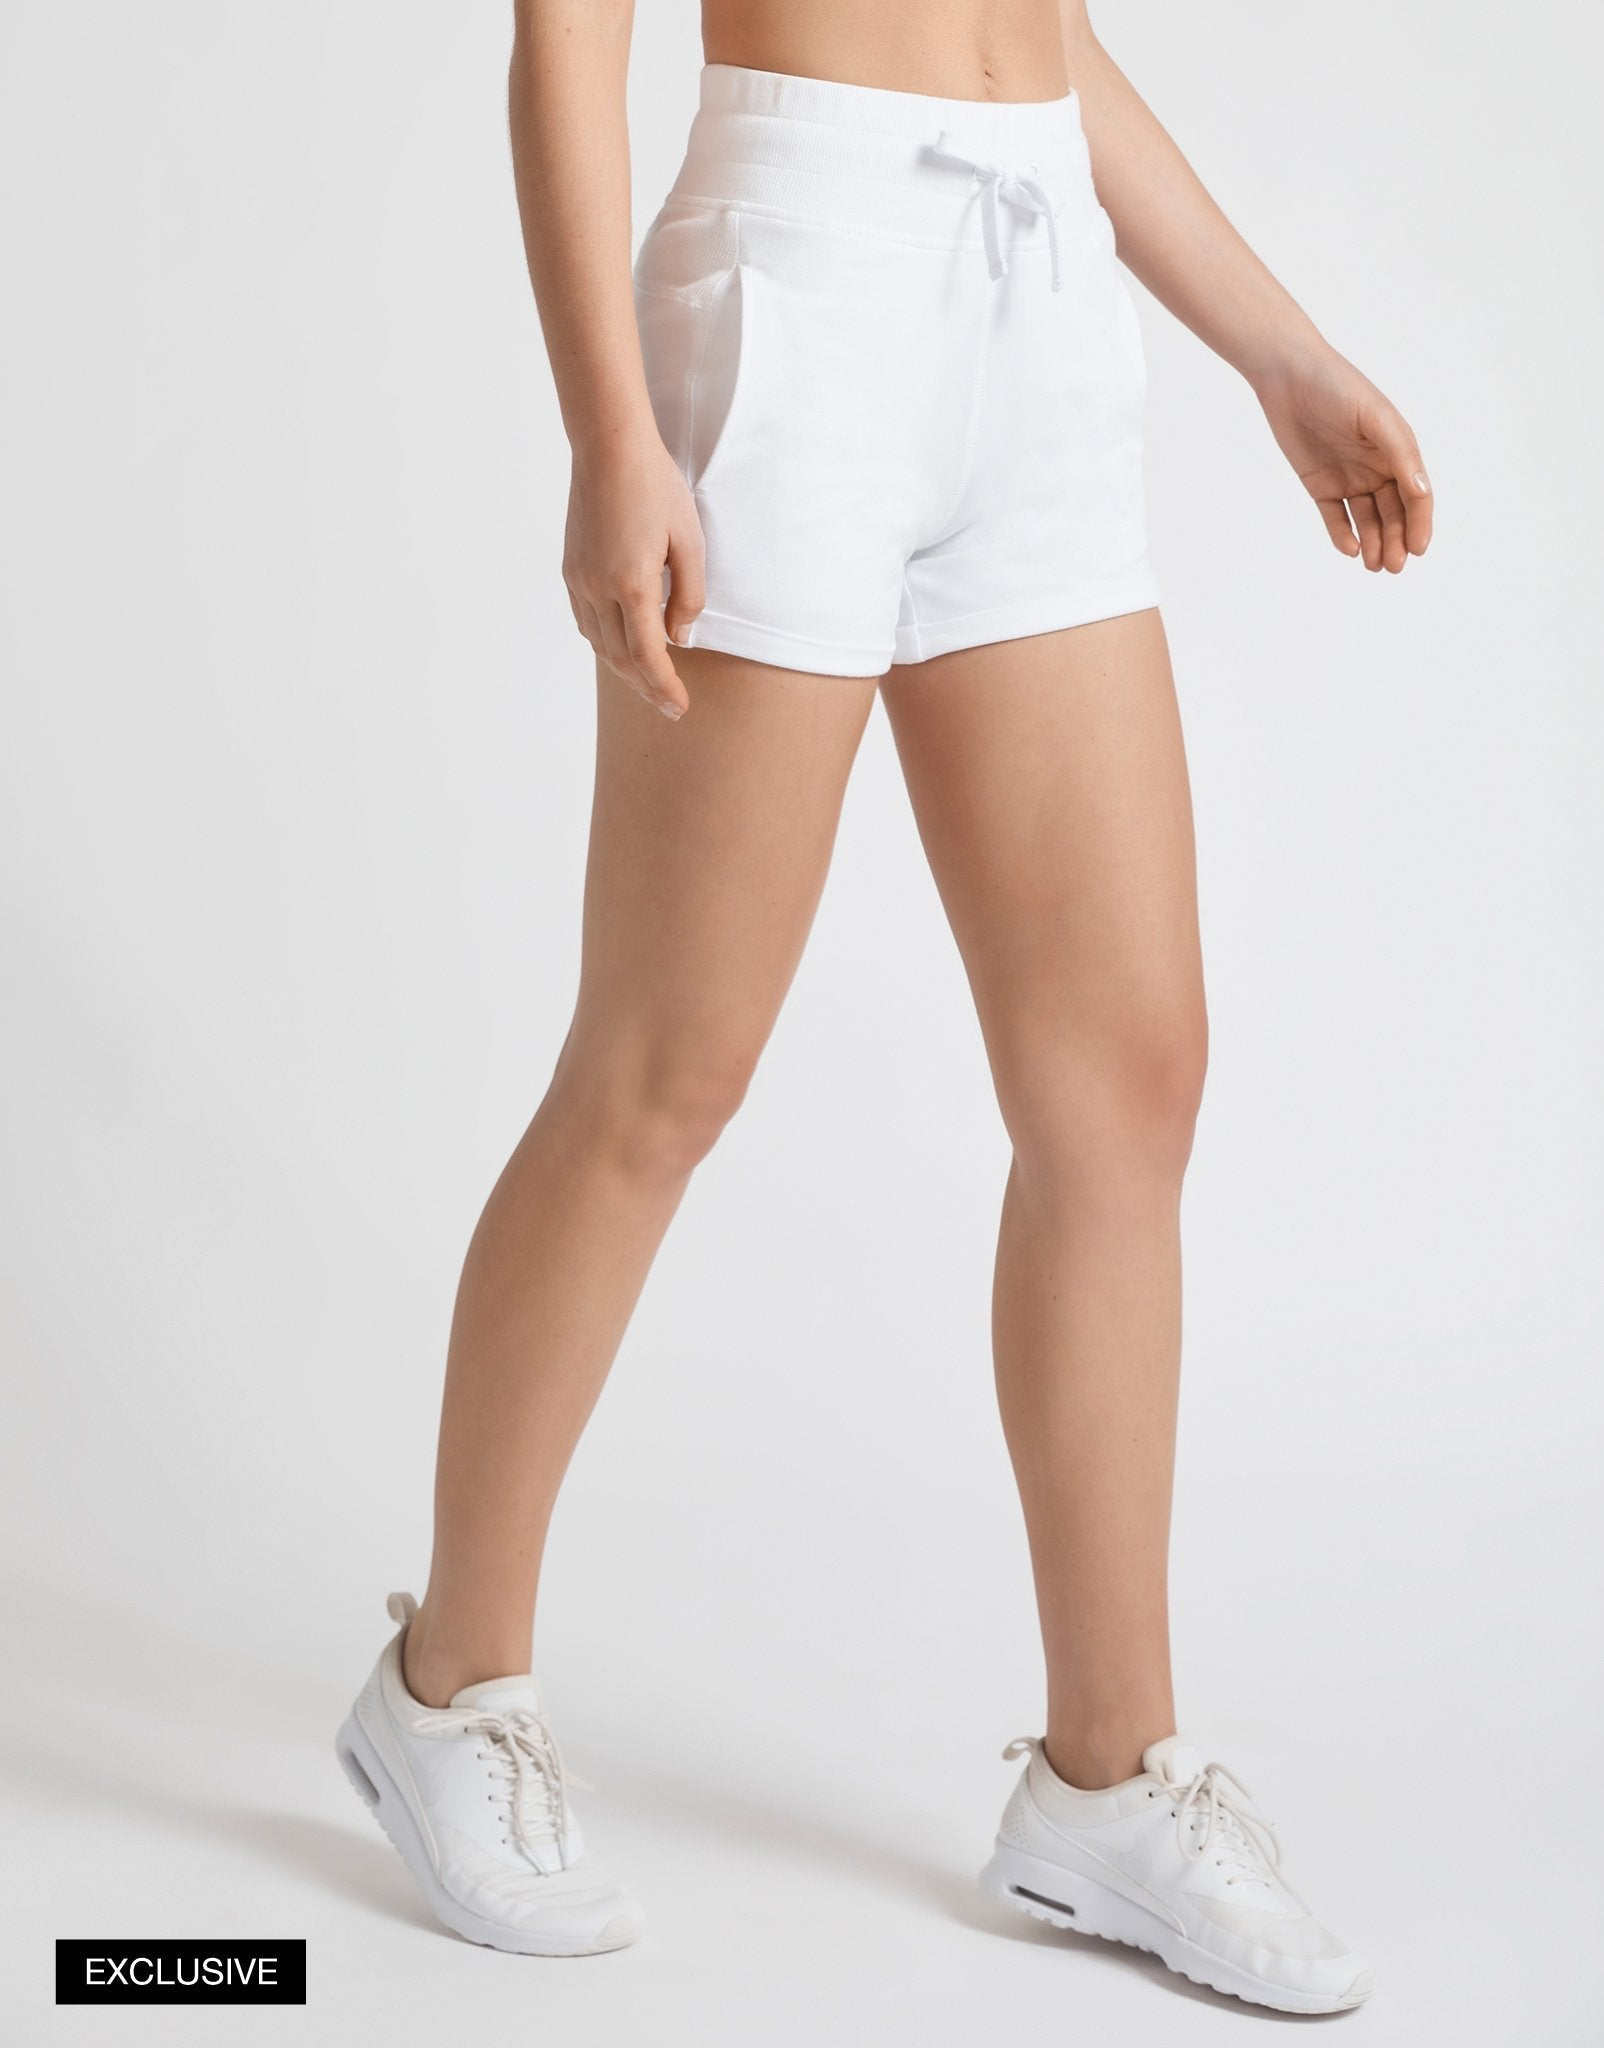 Lilybod-Tika-White-Rolled-Cu%EF%AC%80-Short-side-x.jpg